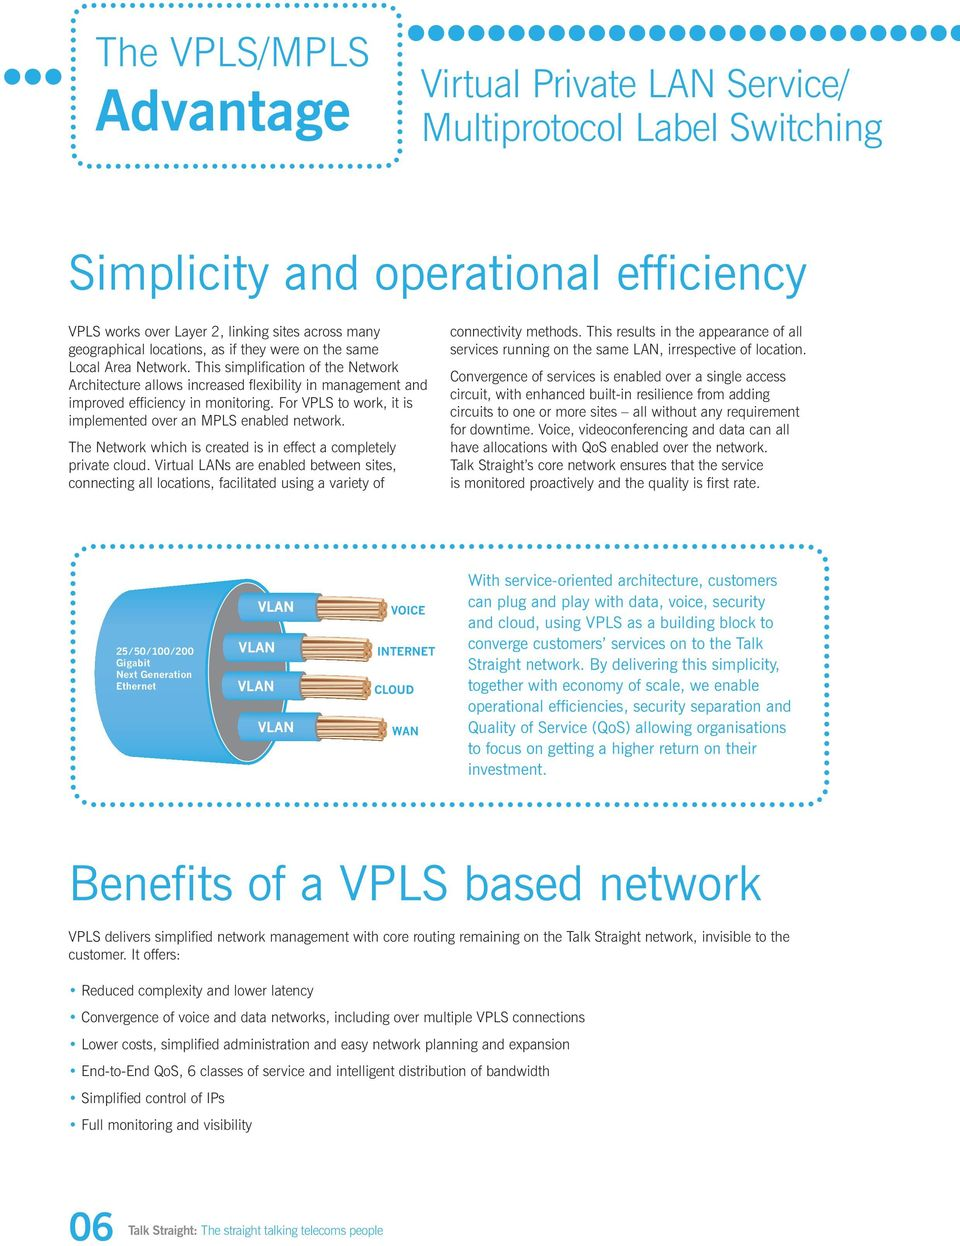 For VPLS to work, it is implemented over an MPLS enabled network. The Network which is created is in effect a completely private cloud.